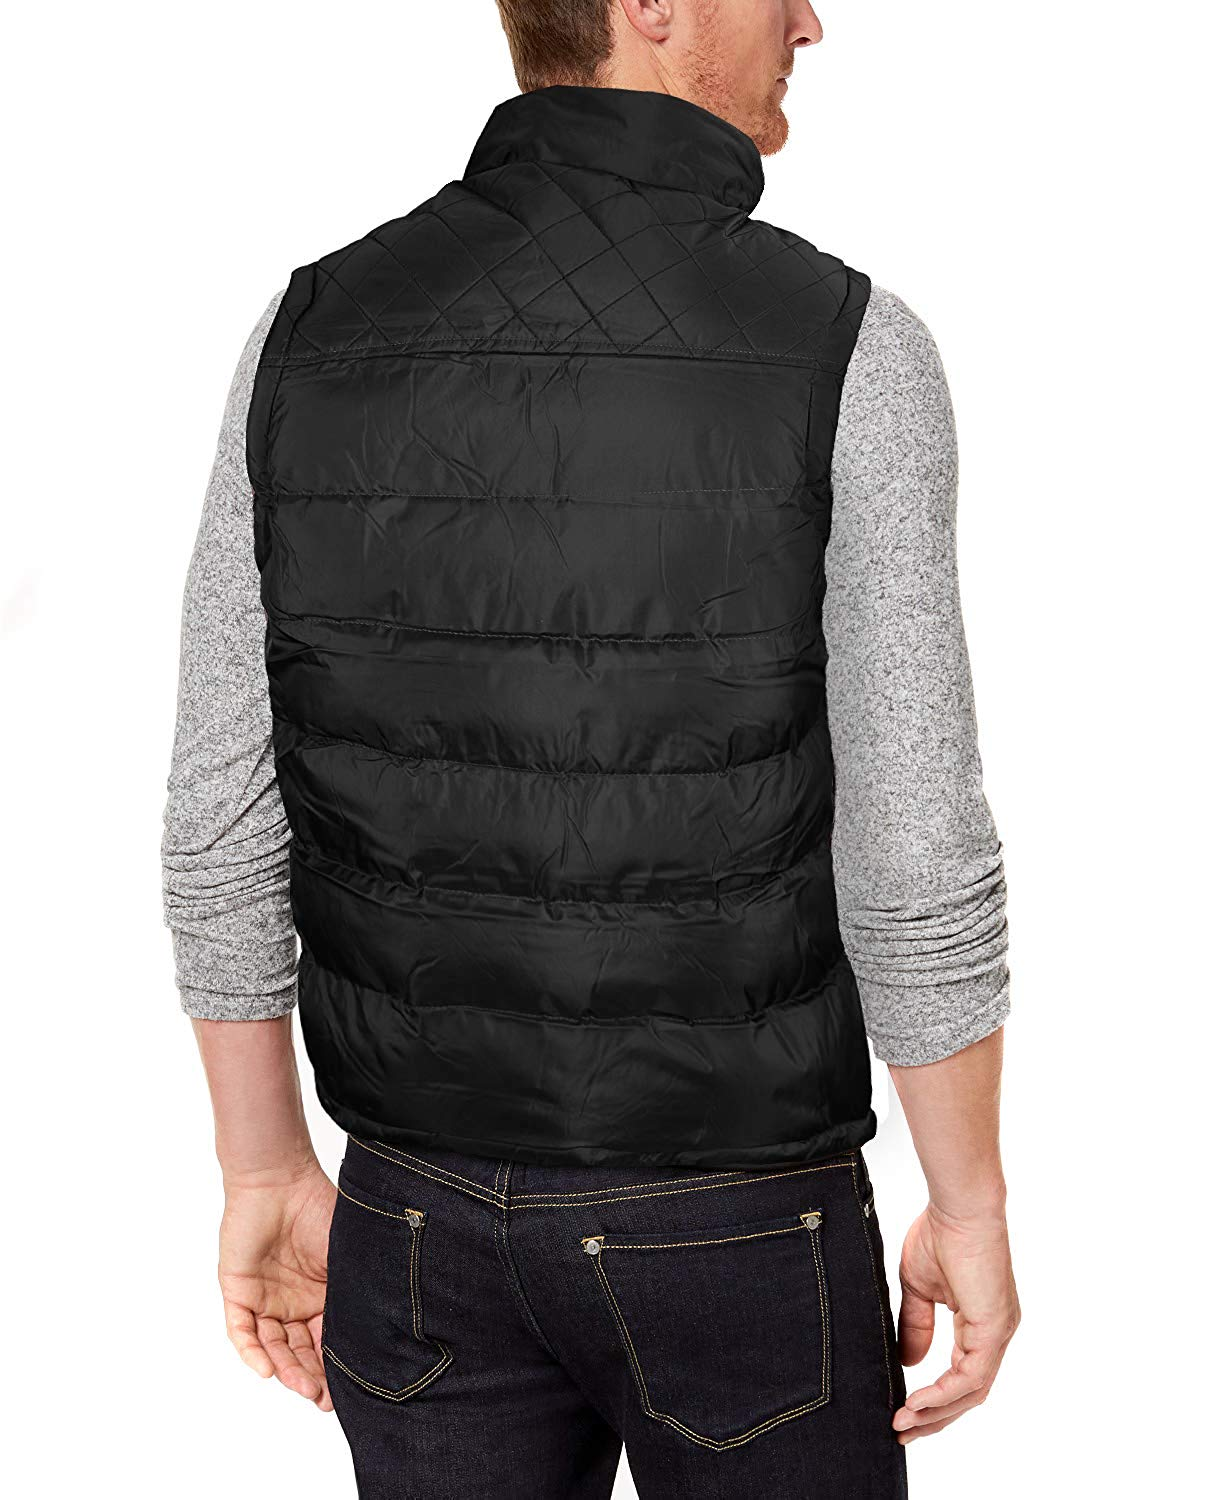 Bandoleros-Western-Men-039-s-Zip-Up-Athletic-Sport-Insulated-Puffer-Vest-VB thumbnail 3